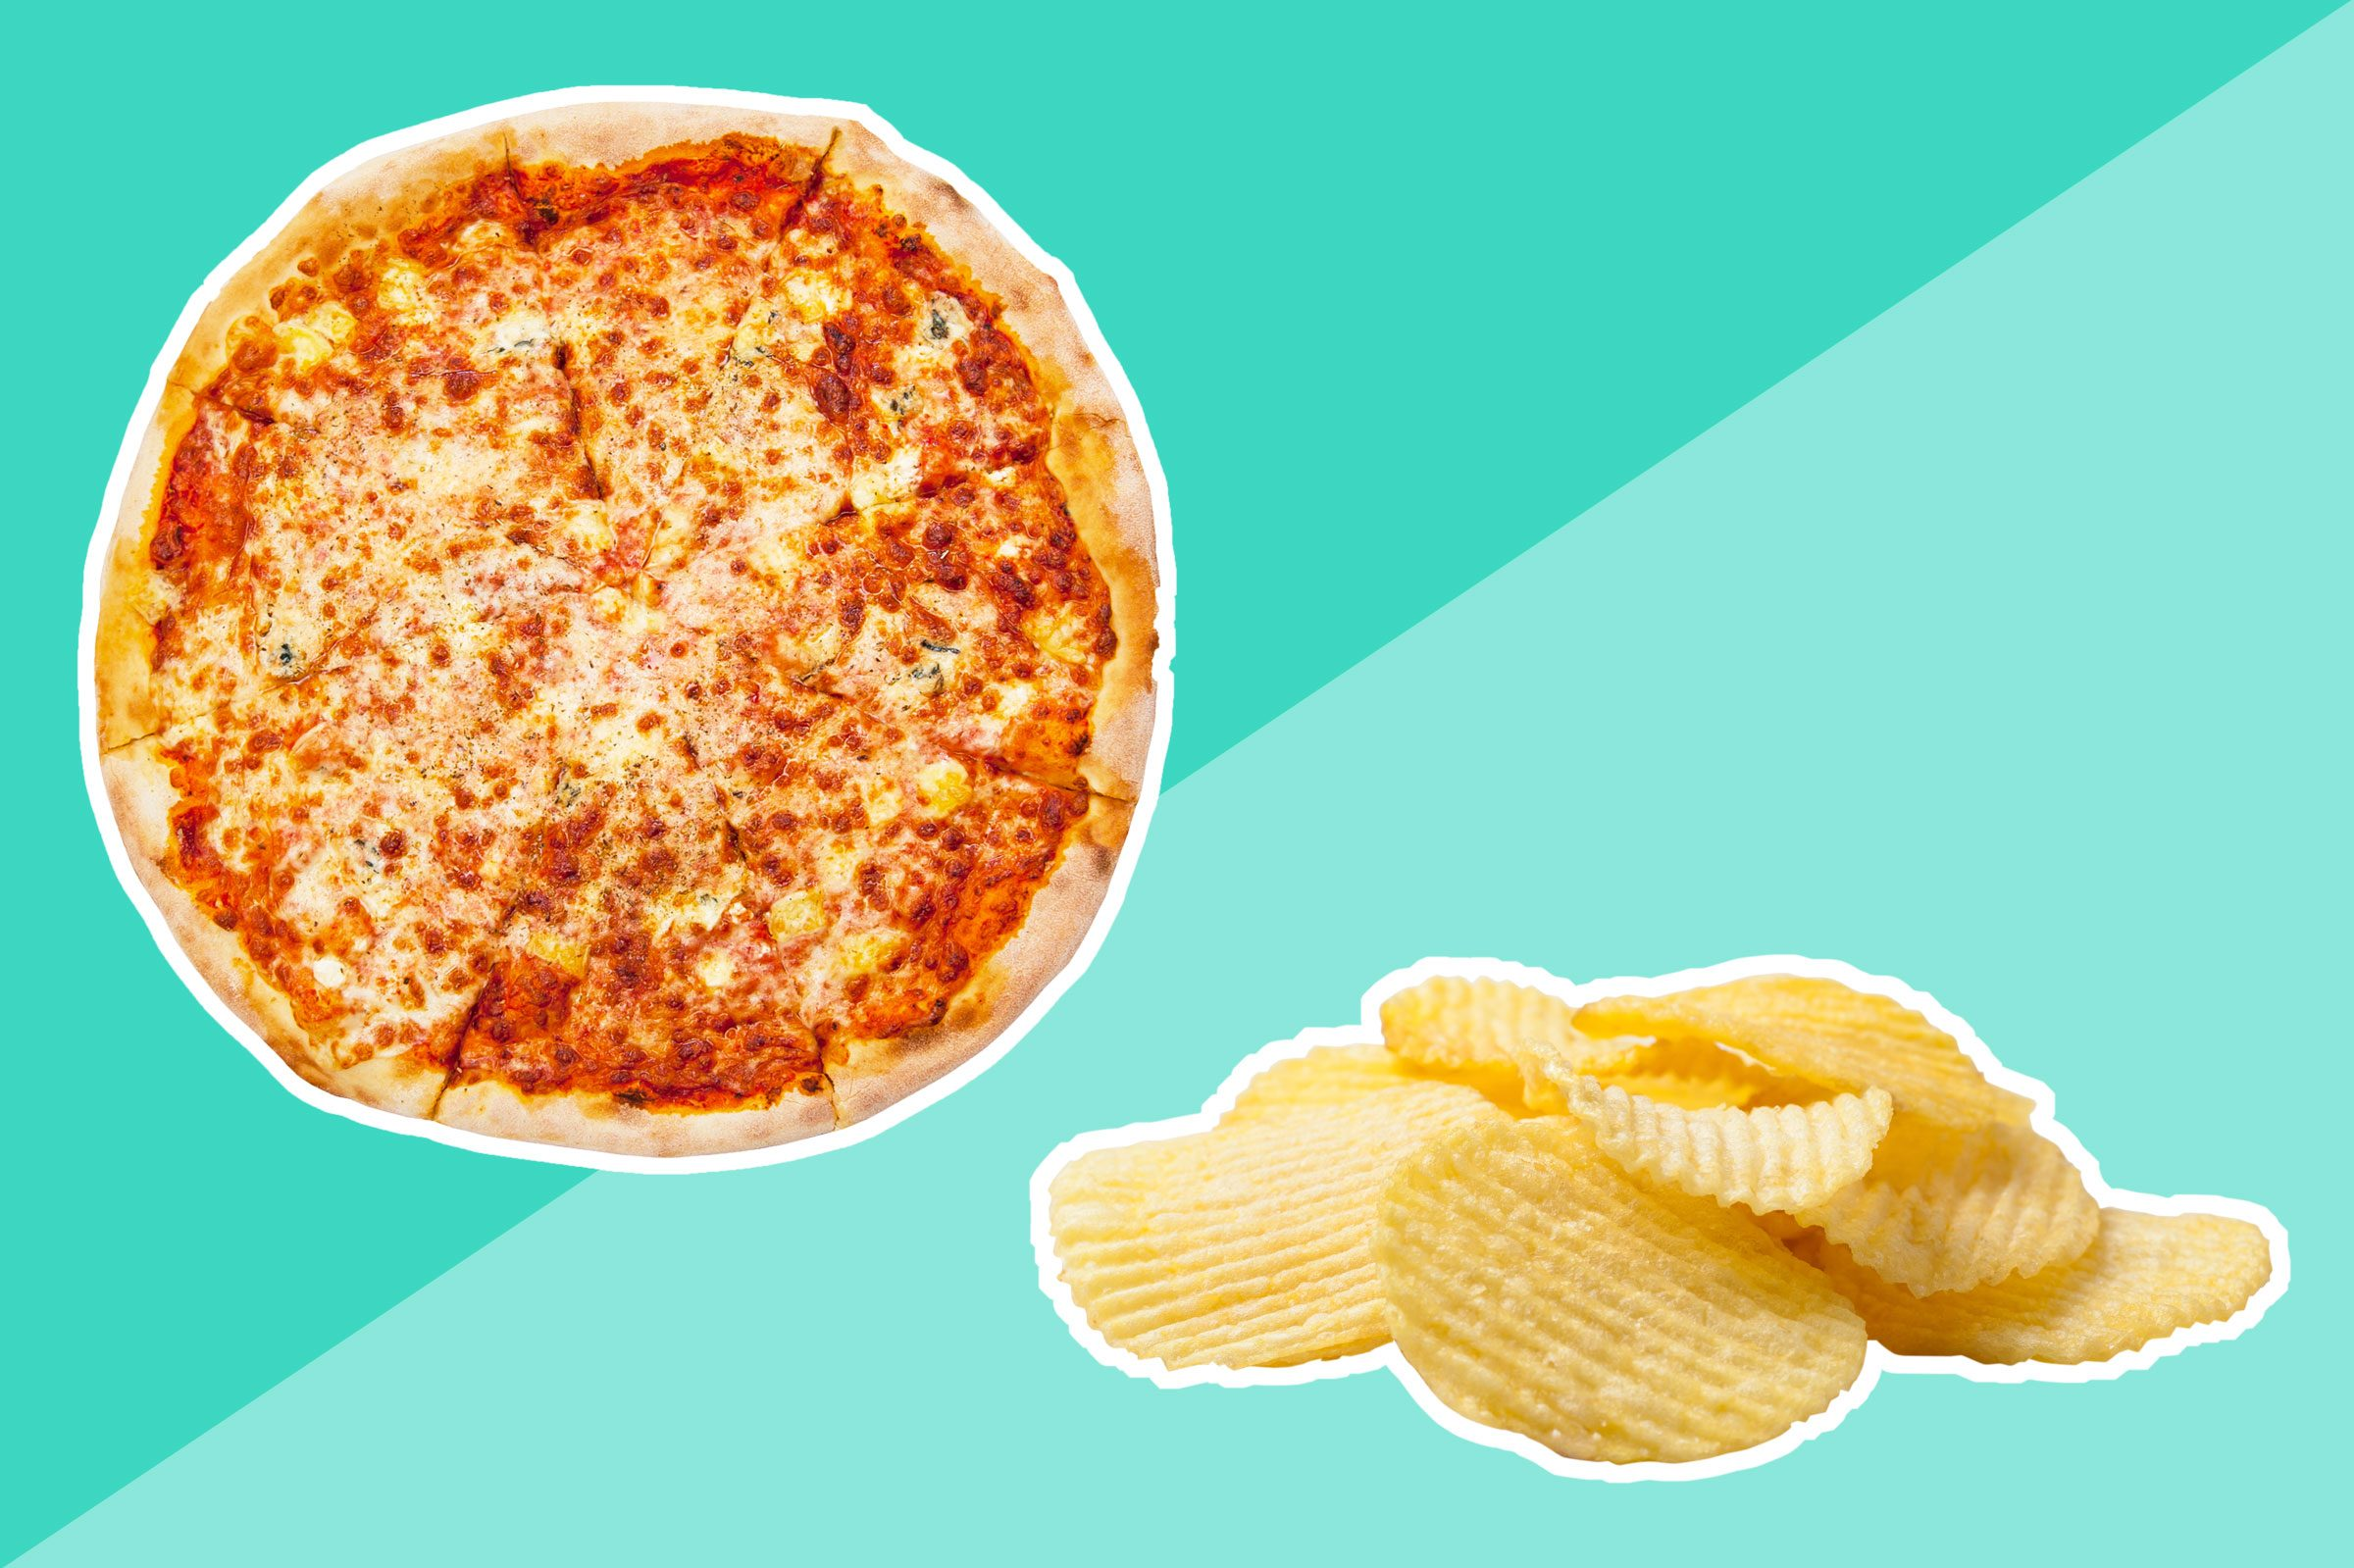 Chips, pizza, and other junk food